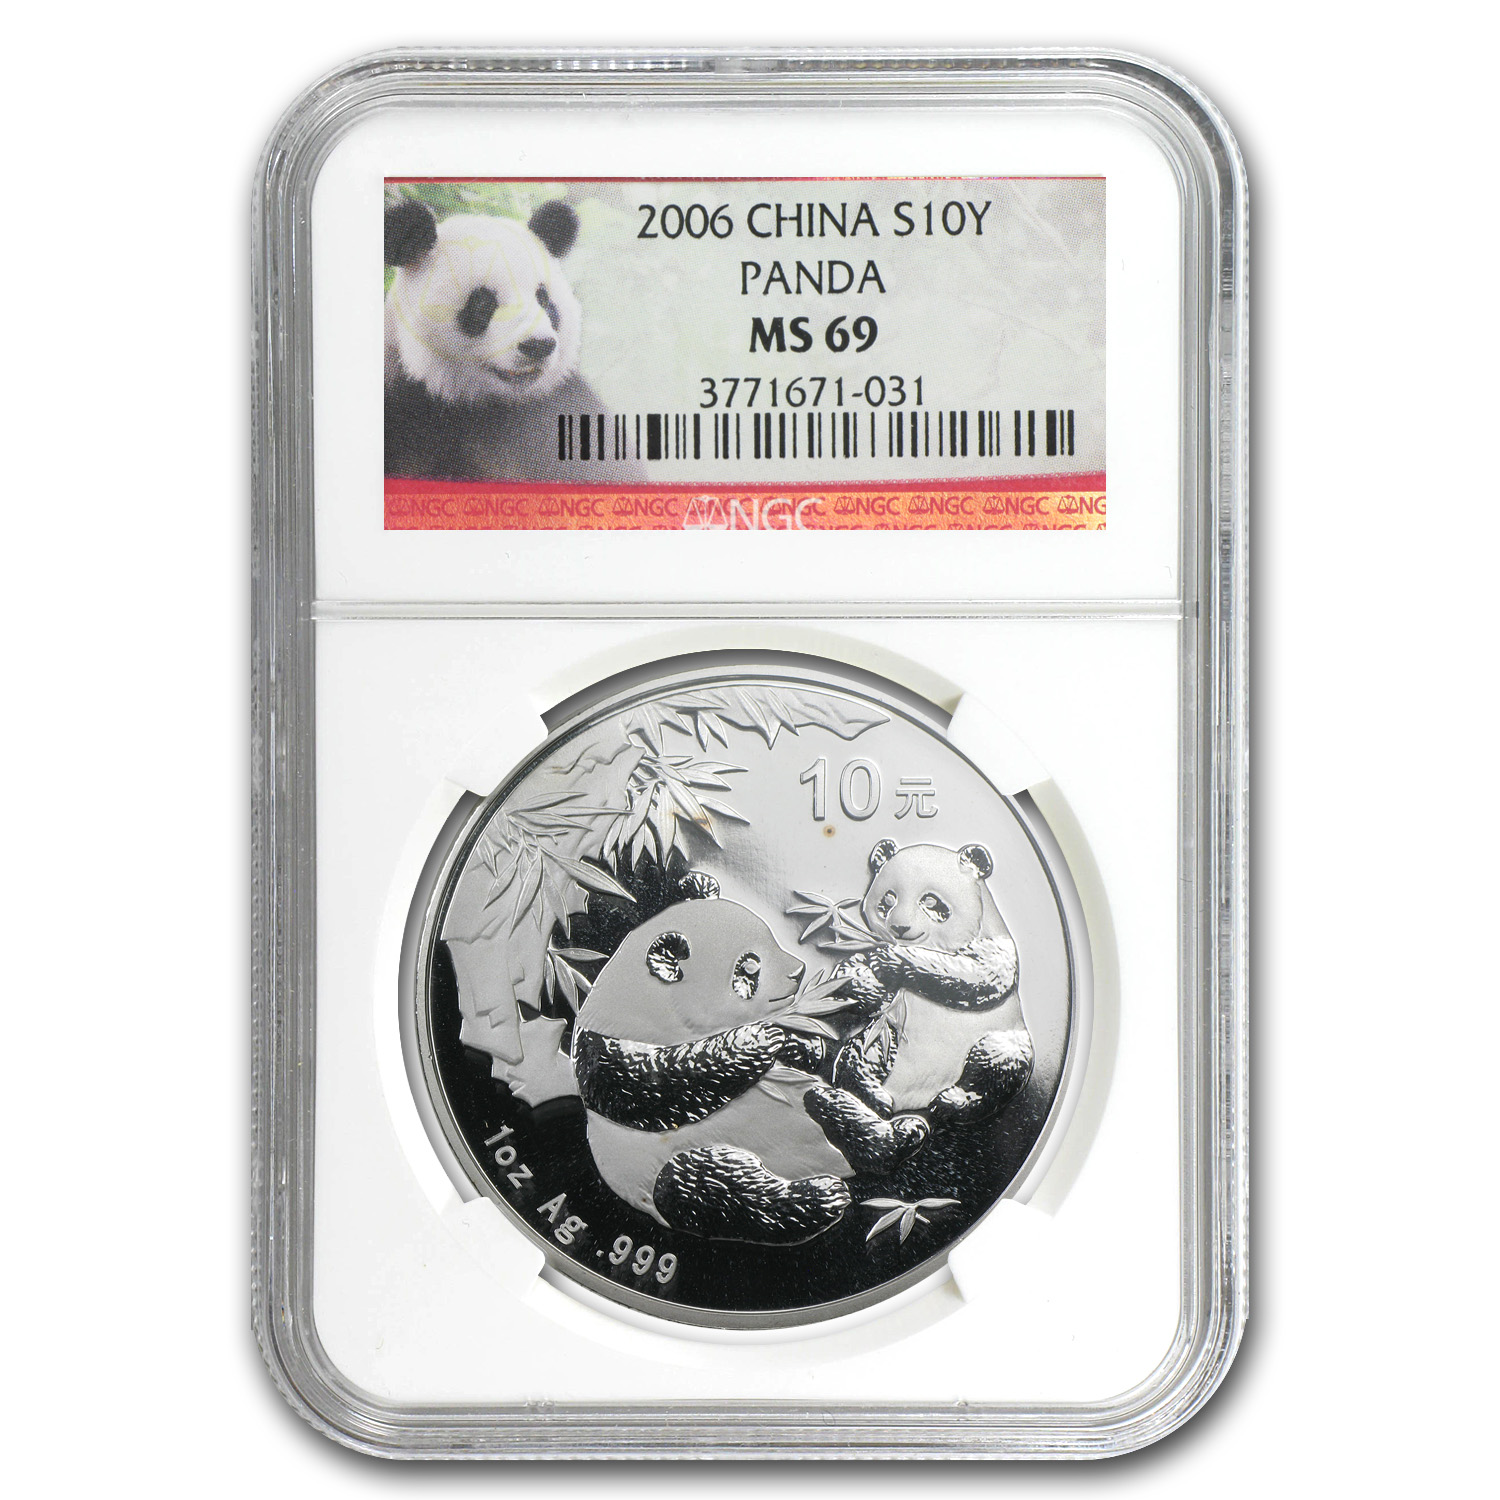 2006 China 1 oz Silver Panda MS-69 NGC